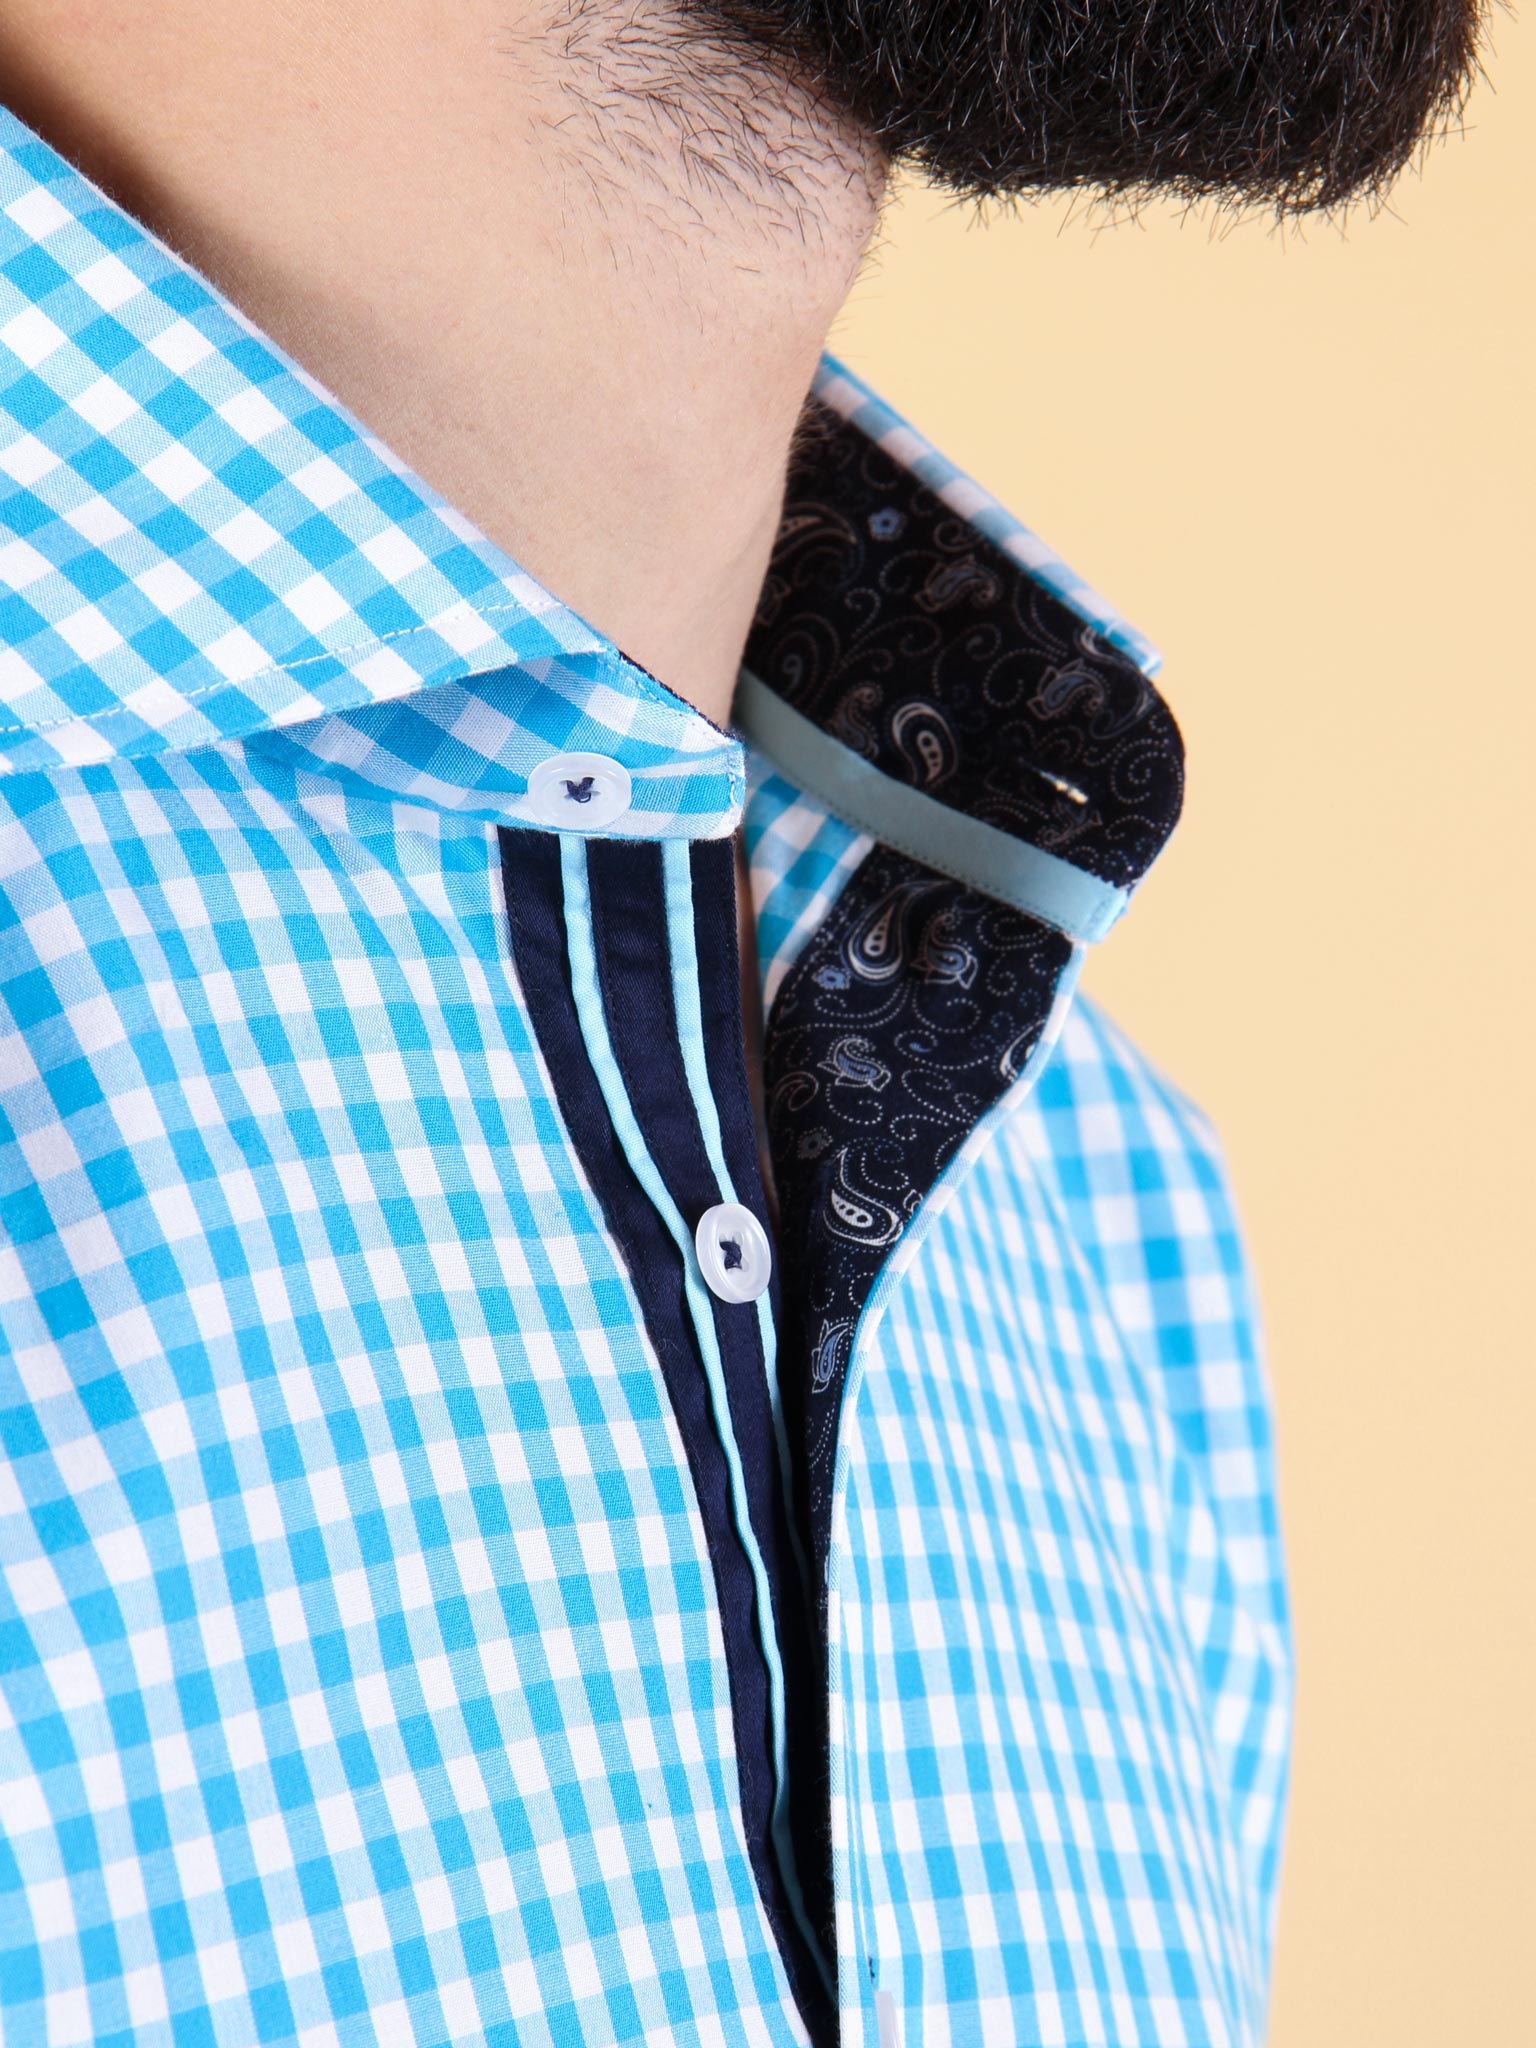 ocean current shirt model collar image